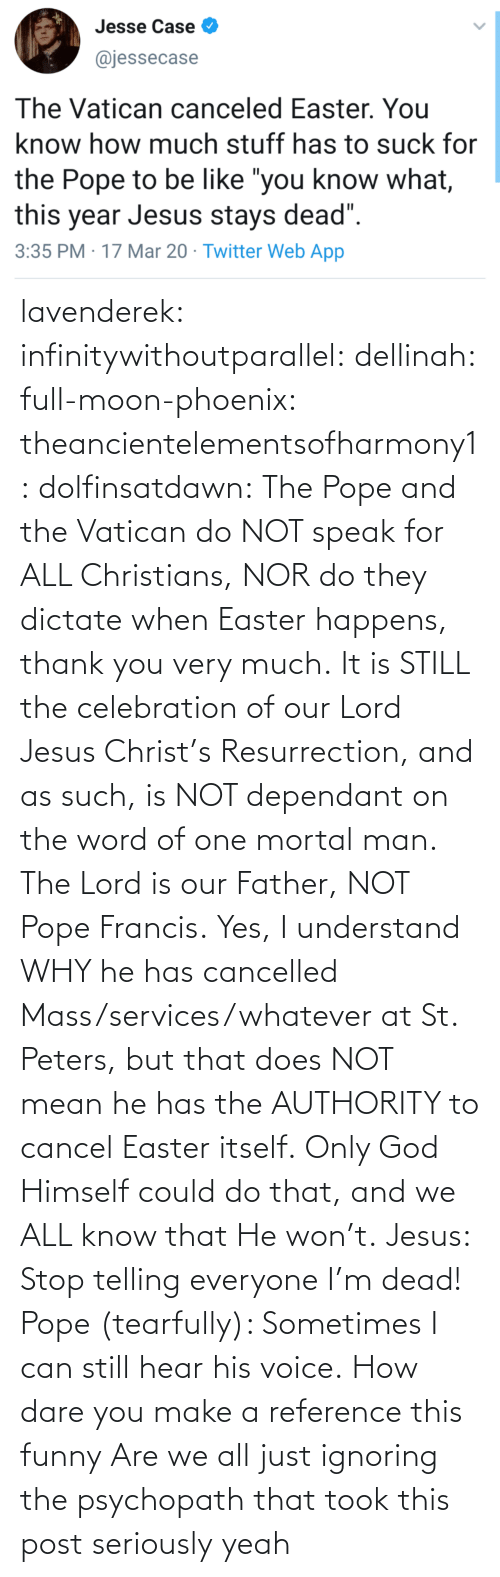 Does Not: lavenderek: infinitywithoutparallel:  dellinah:  full-moon-phoenix:   theancientelementsofharmony1:  dolfinsatdawn:    The Pope and the Vatican do NOT speak for ALL Christians, NOR do they dictate when Easter happens, thank you very much. It is STILL the celebration of our Lord Jesus Christ's Resurrection, and as such, is NOT dependant on the word of one mortal man. The Lord is our Father, NOT Pope Francis. Yes, I understand WHY he has cancelled Mass/services/whatever at St. Peters, but that does NOT mean he has the AUTHORITY to cancel Easter itself. Only God Himself could do that, and we ALL know that He won't.    Jesus: Stop telling everyone I'm dead! Pope (tearfully): Sometimes I can still hear his voice.    How dare you make a reference this funny    Are we all just ignoring the psychopath that took this post seriously     yeah